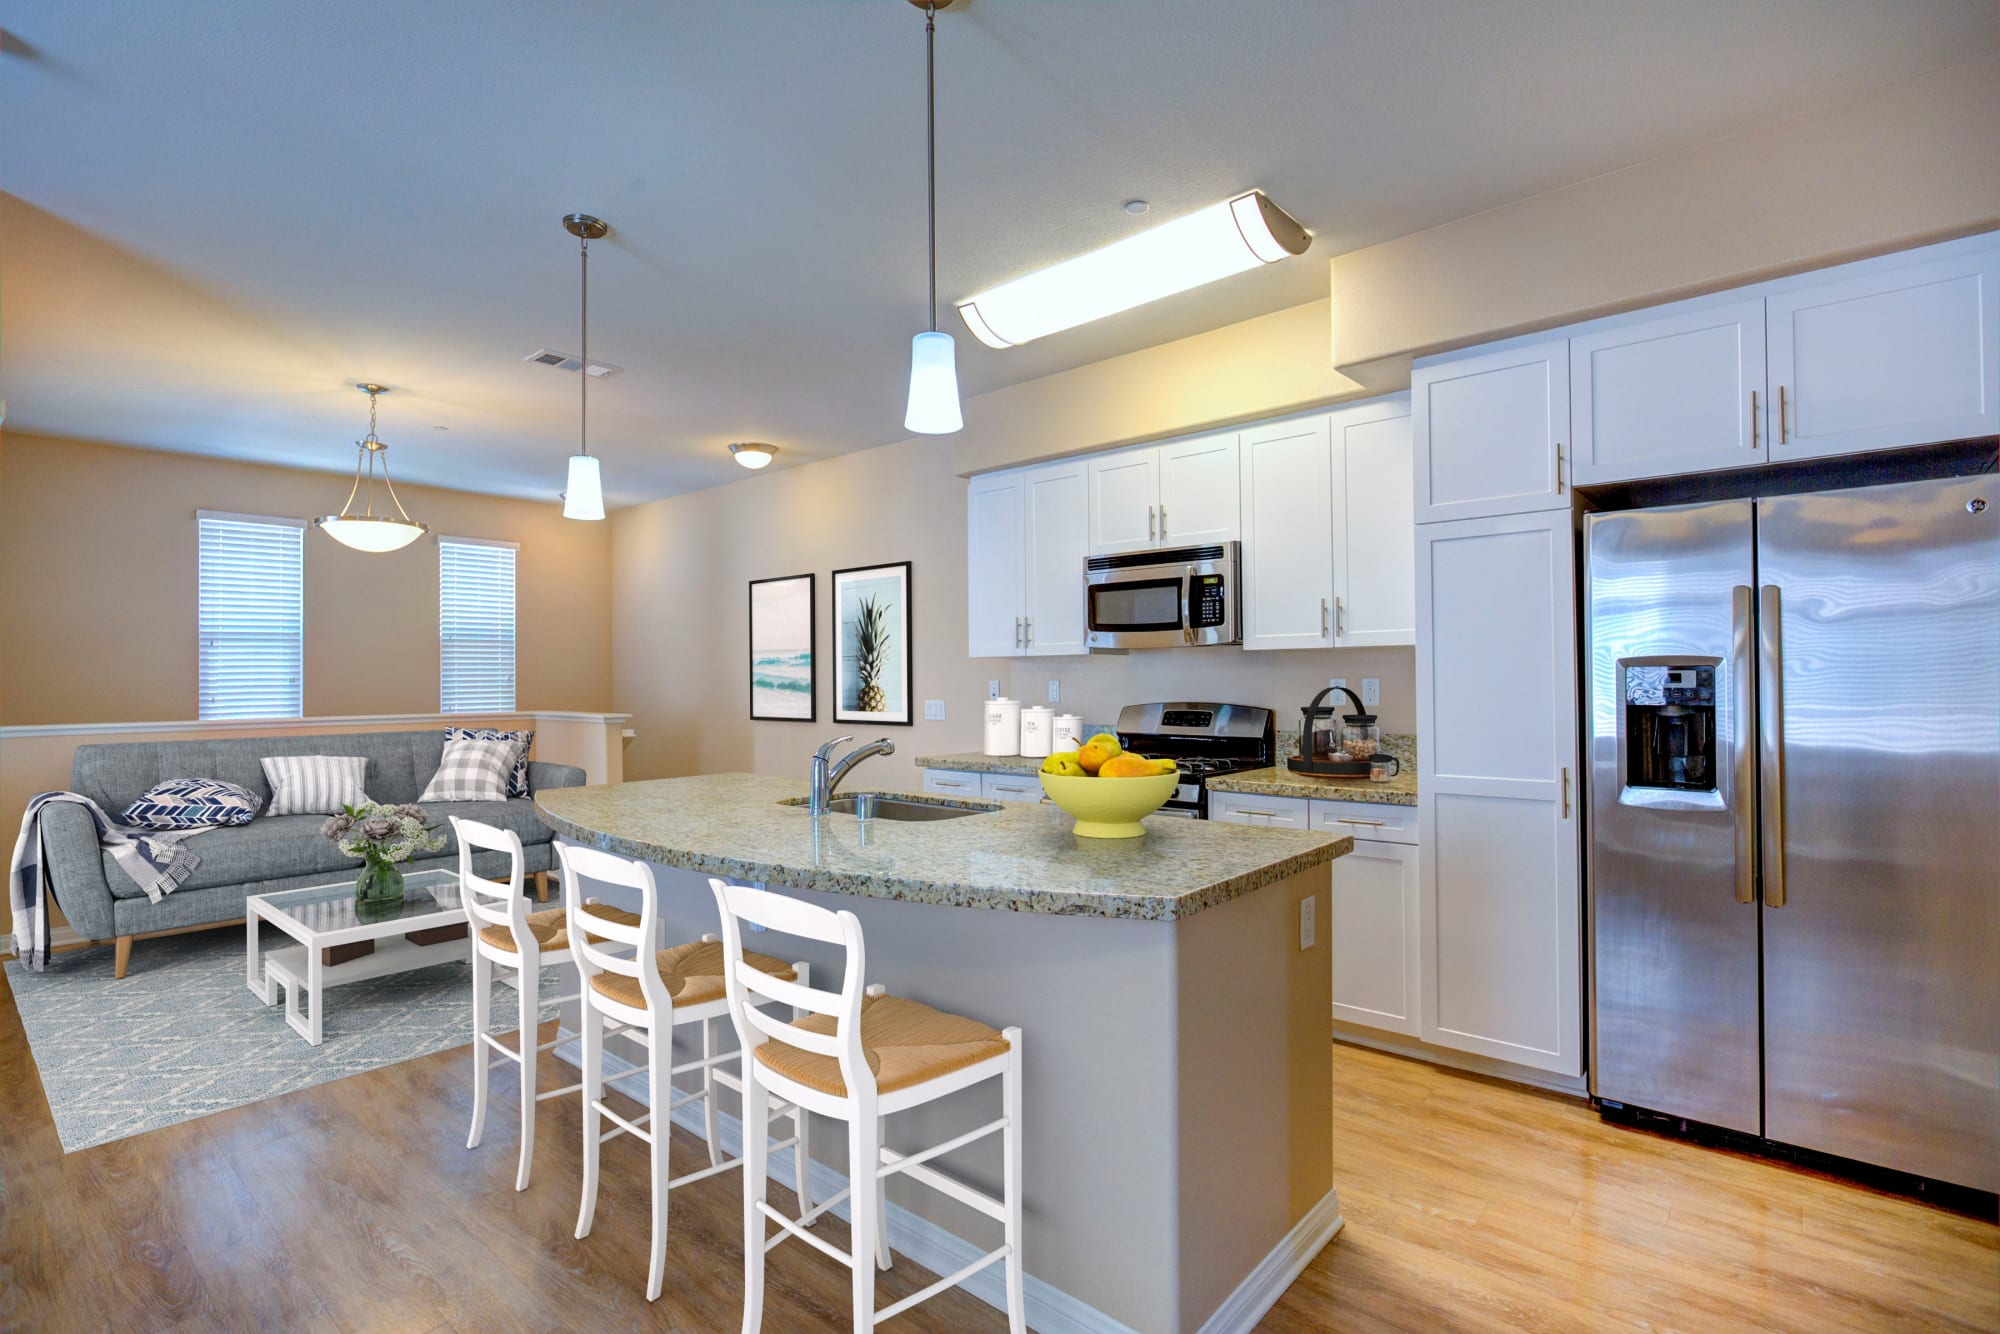 A kitchen, with open floor plan at Palisades Sierra Del Oro in Corona, California